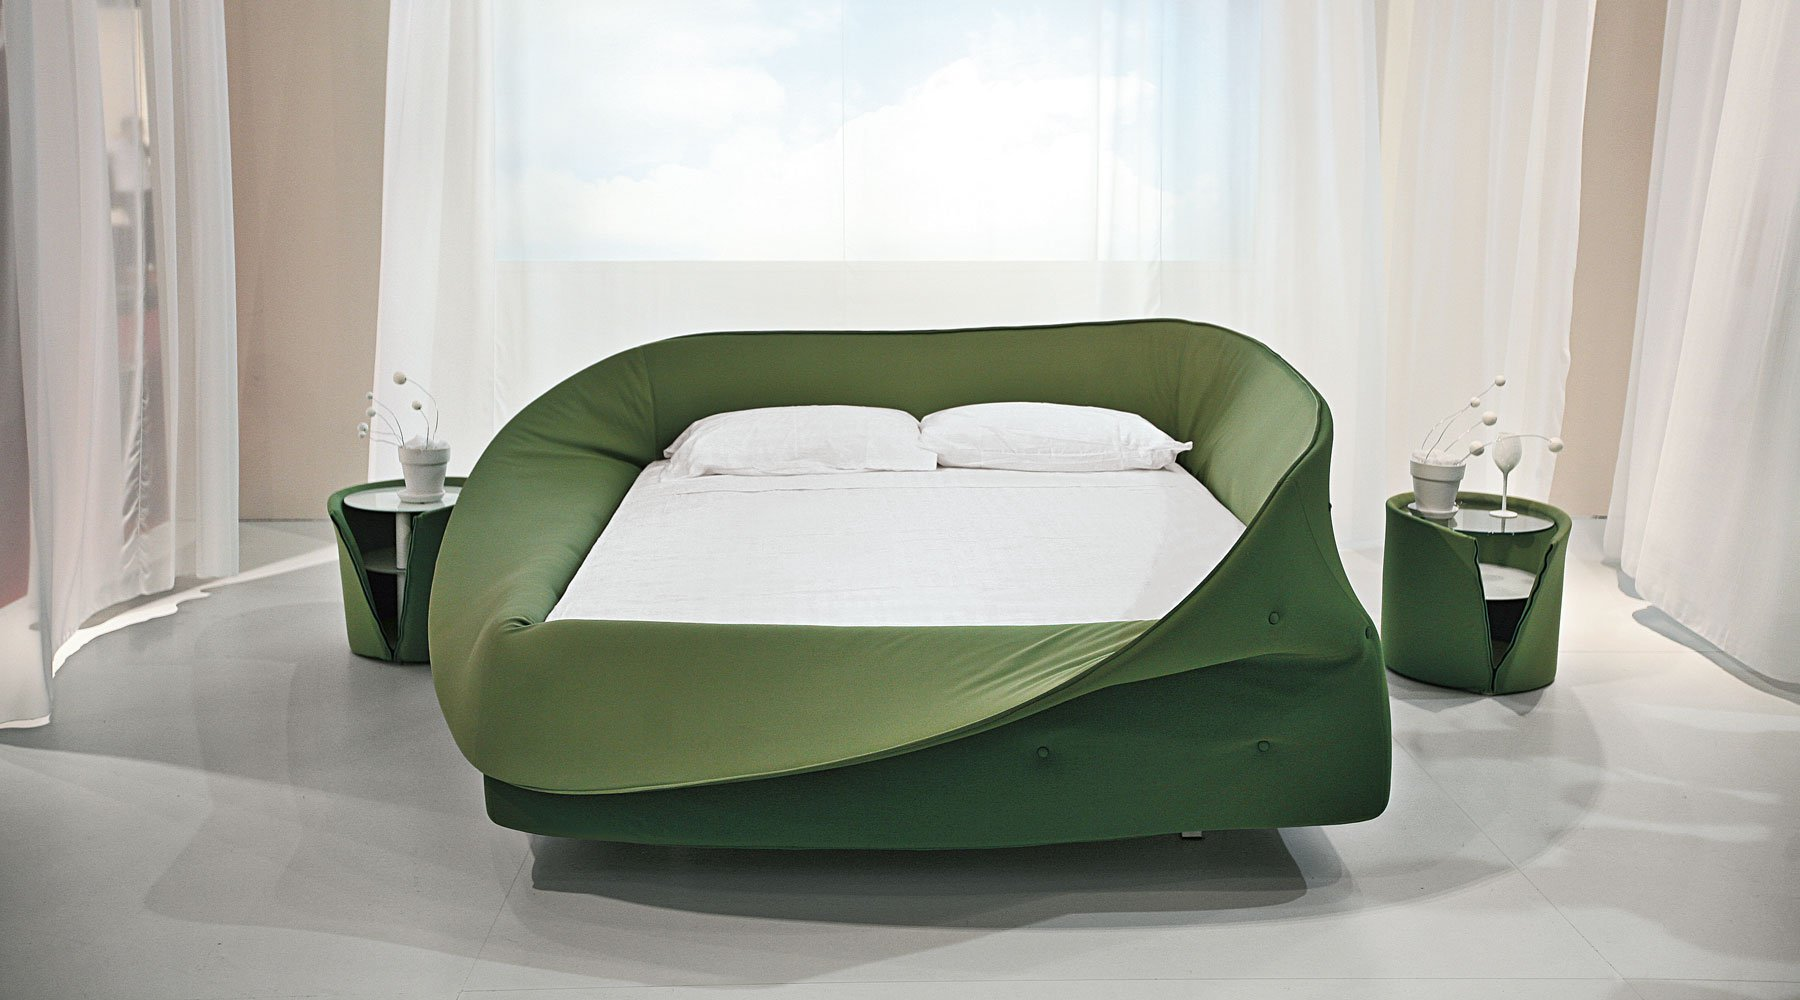 Ausgefallene Betten Floating Bed Archives Interior Designer